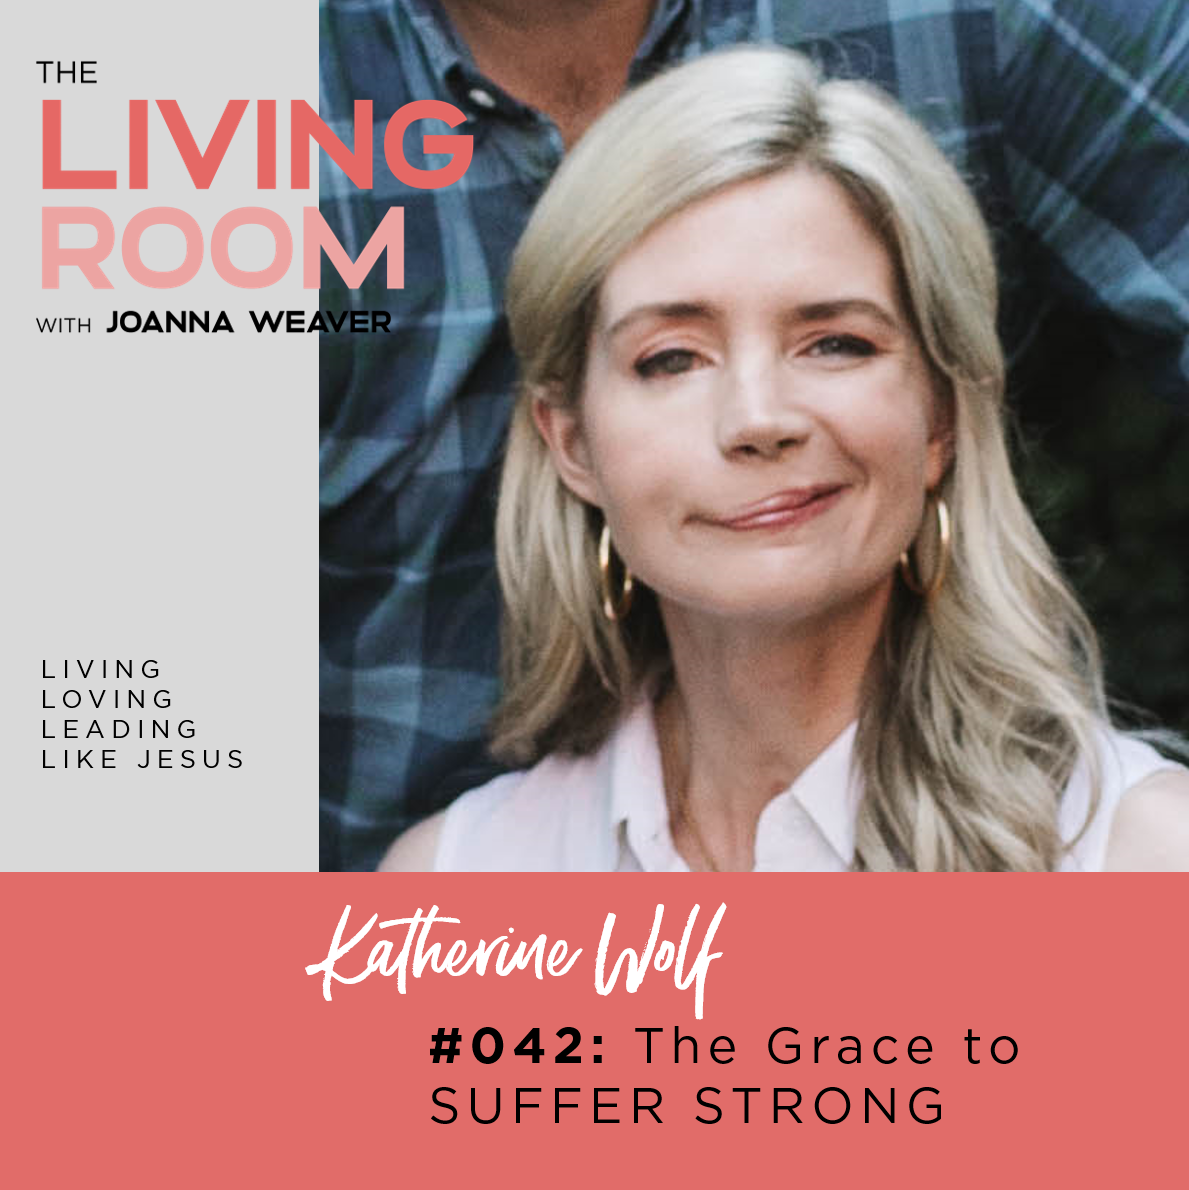 TLR 042: The Grace to Suffer Strong with Katherine Wolf - The Living Room with Joanna Weaver Podcast